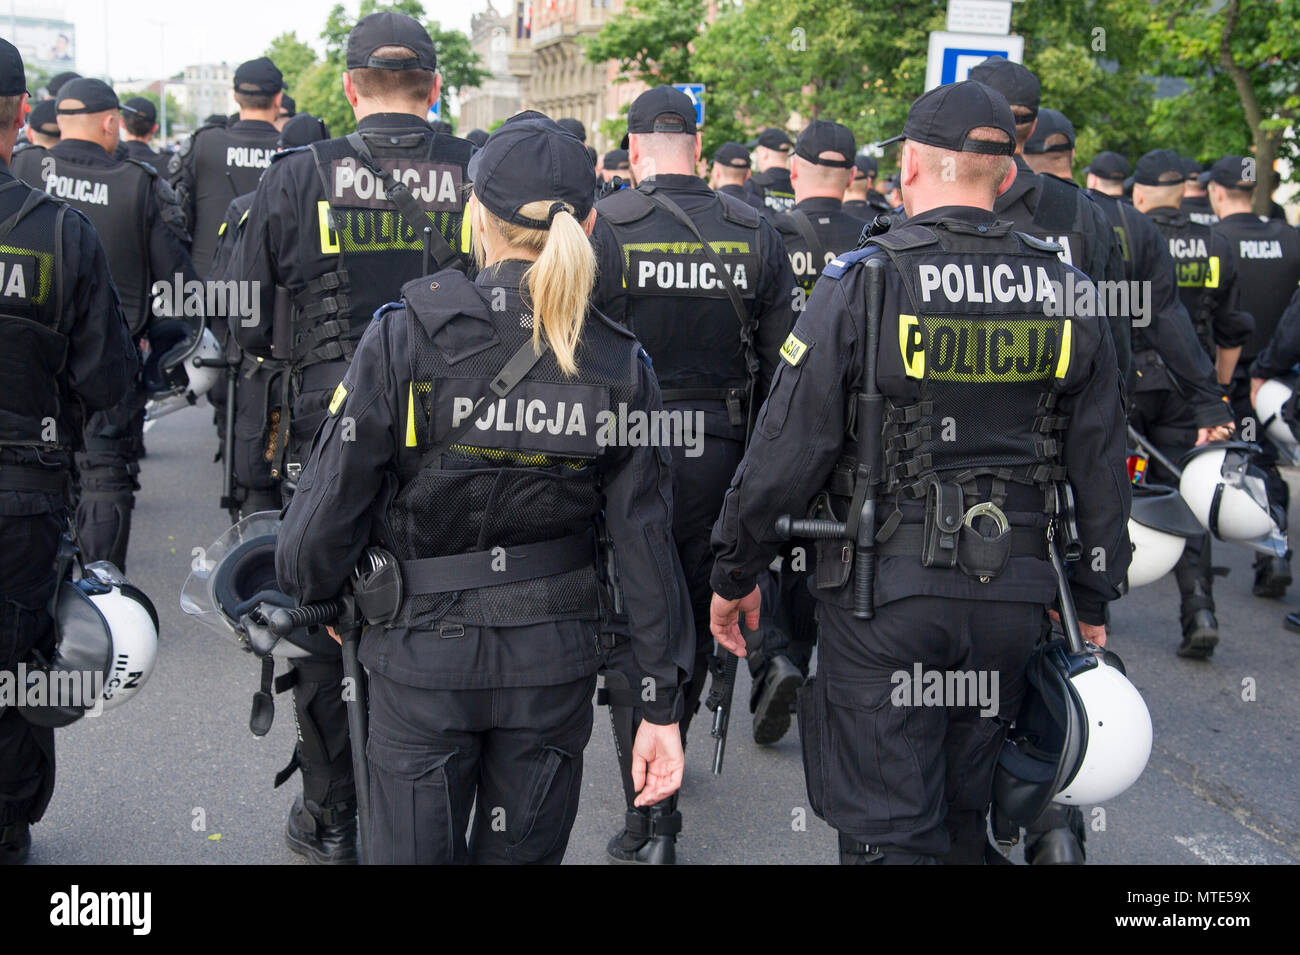 Polish anti-riot police (Oddzialy Prewencji Policji) during The Fourth Tricity Equality March to support LGBT rights in  Gdansk, Poland May 26th 2018  - Stock Image